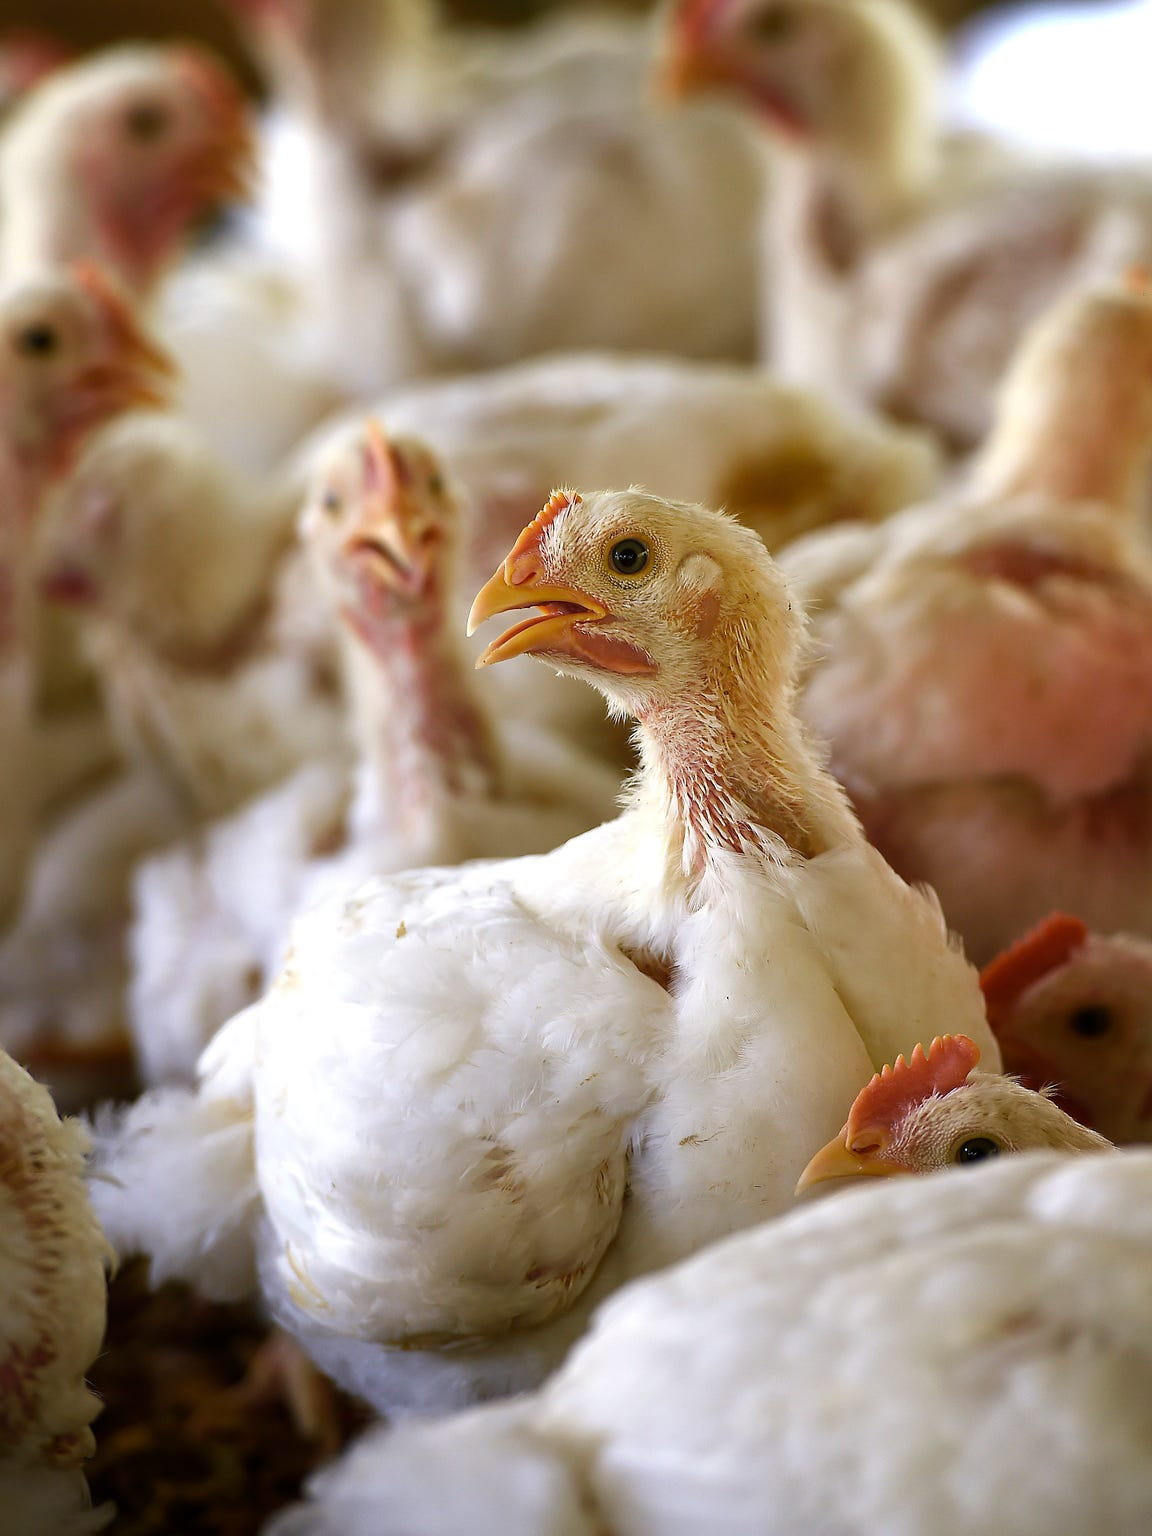 KORE Foundation uses chicken farming as a means of